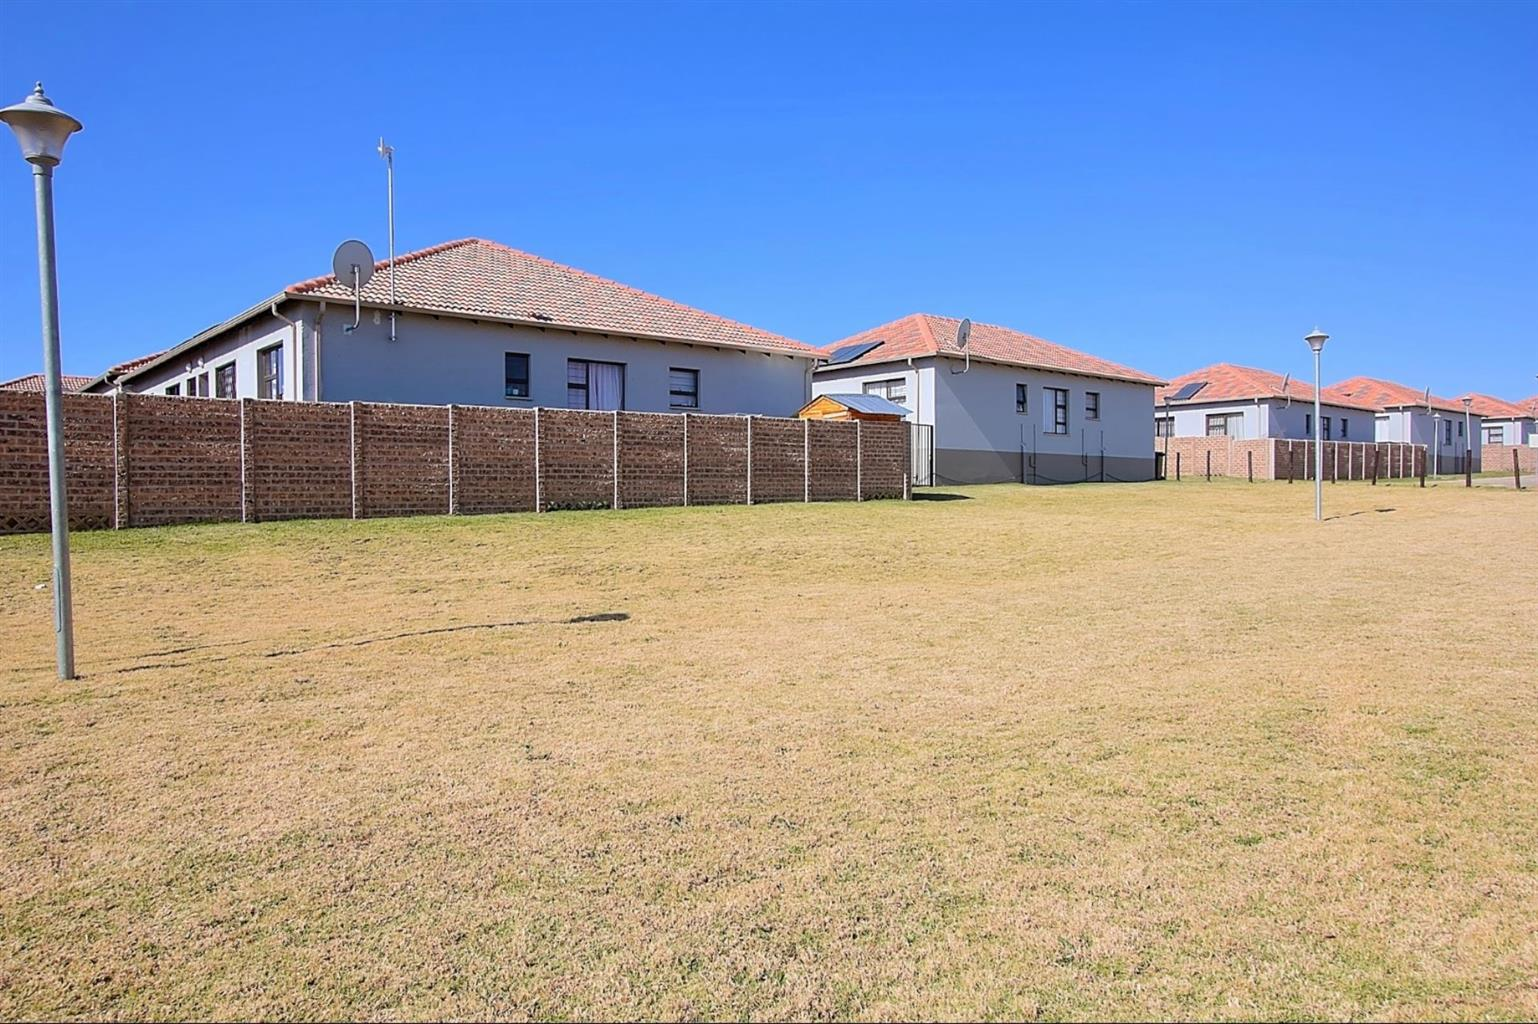 Townhouse Rental Monthly in PARKRAND